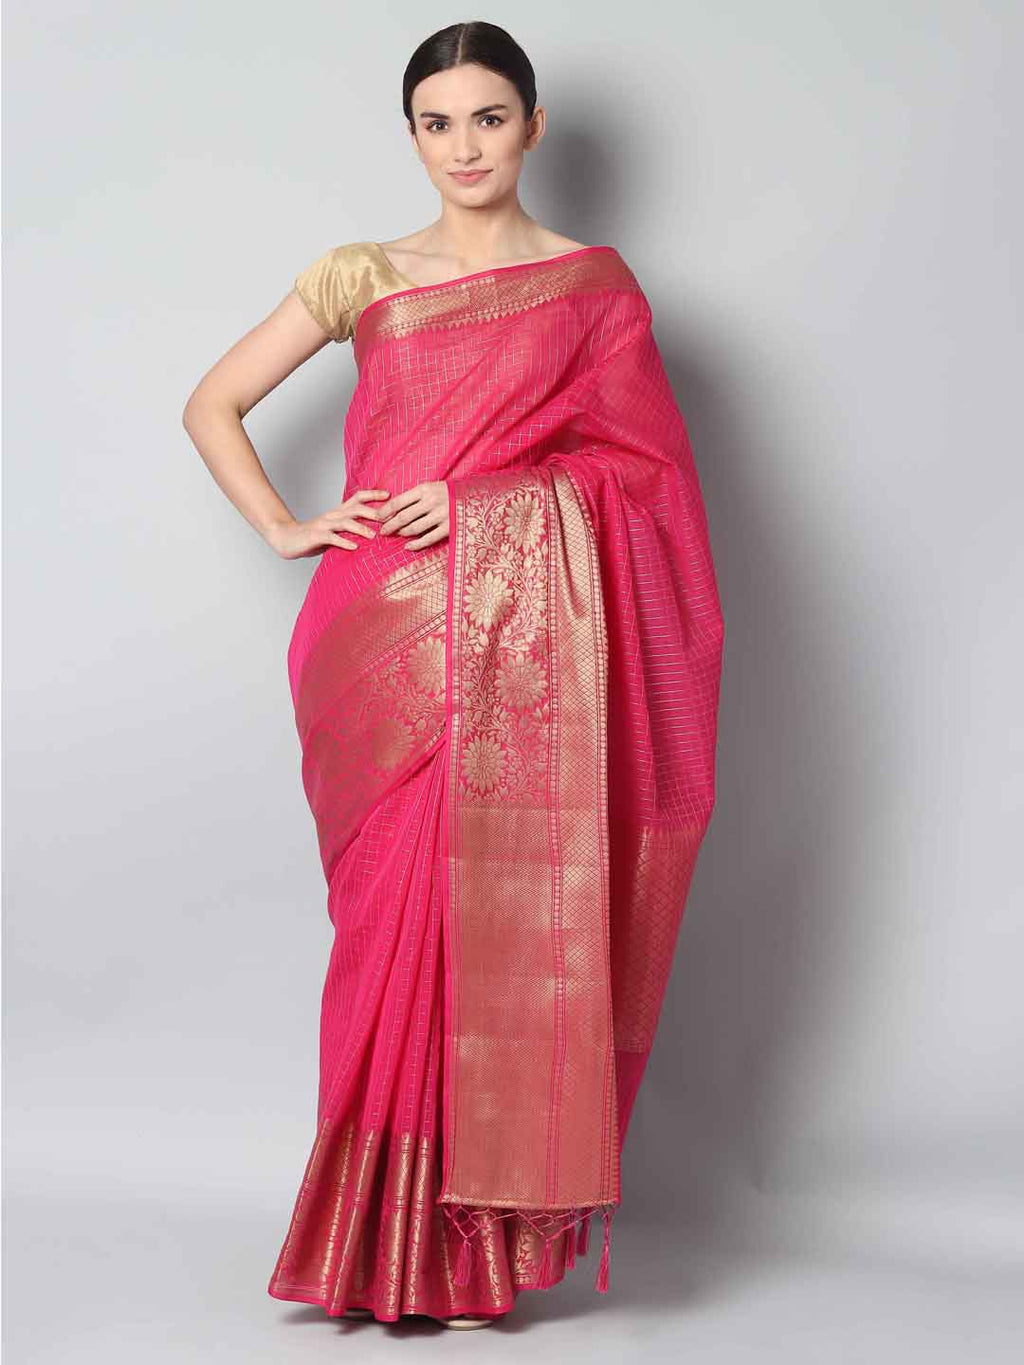 Small checks of antique gold on pink chanderi saree and wide border